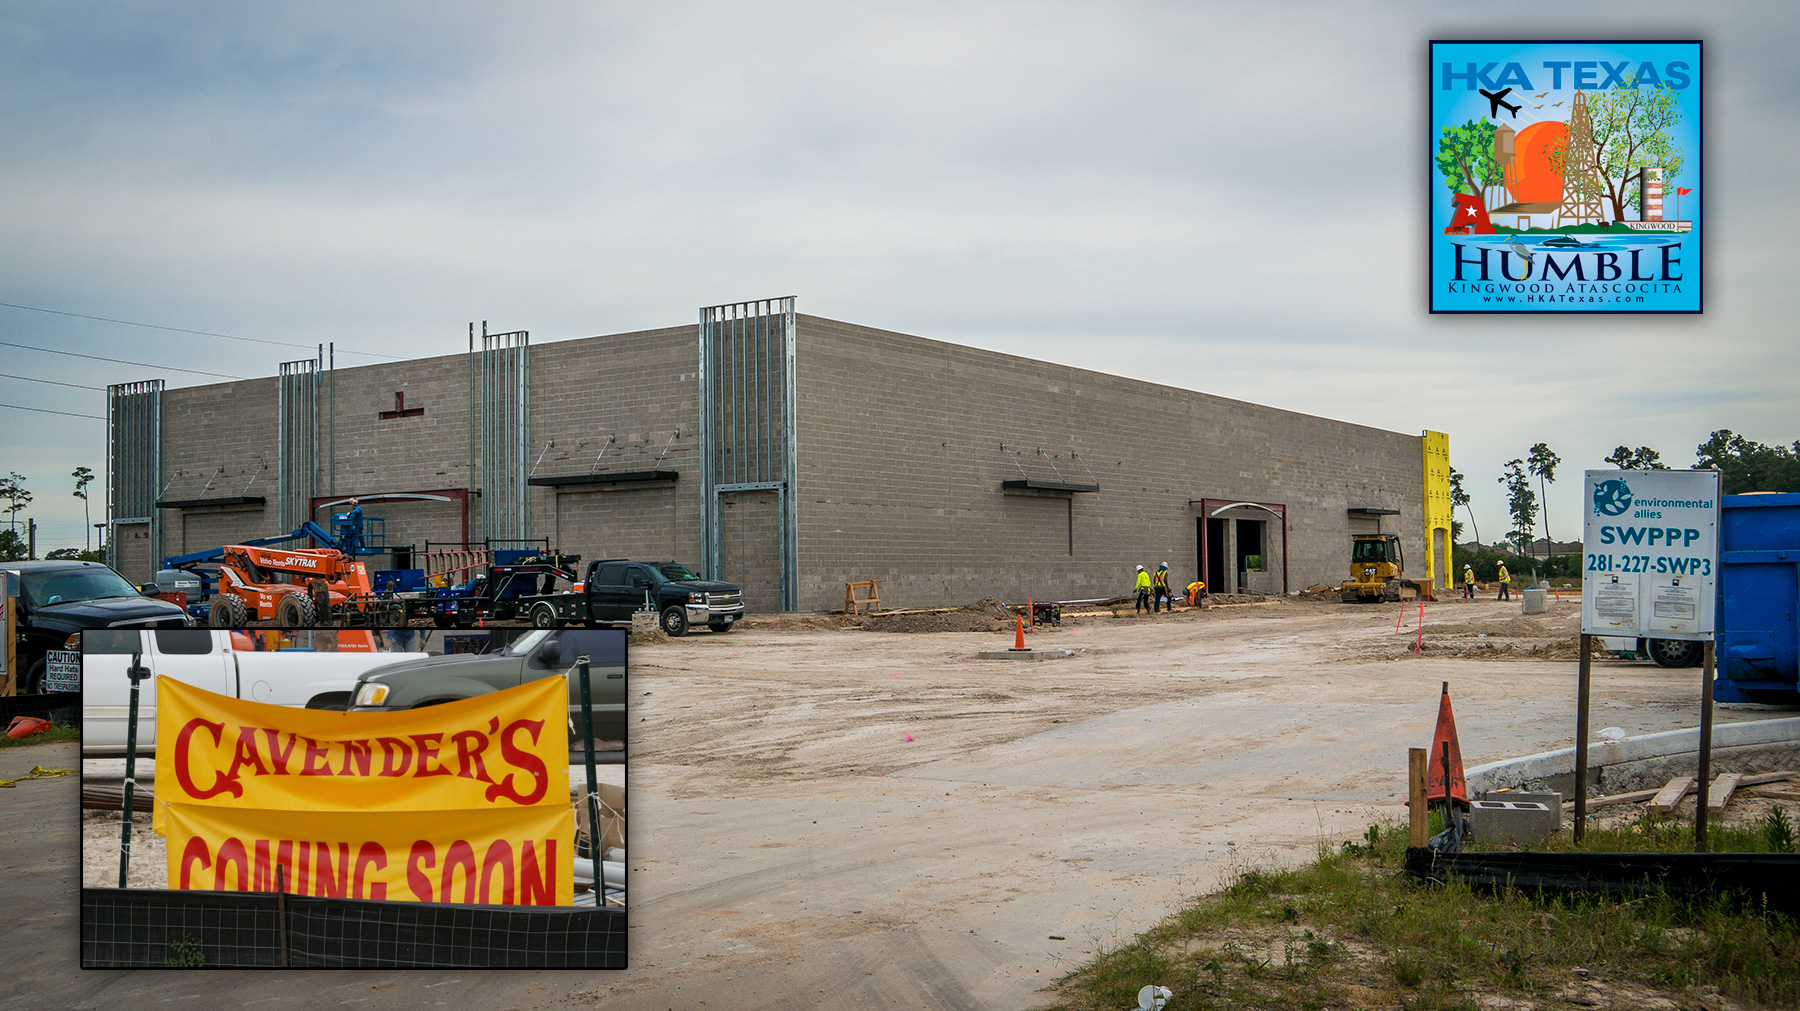 A New Larger Cavender S Is Being Built In Humble Texas